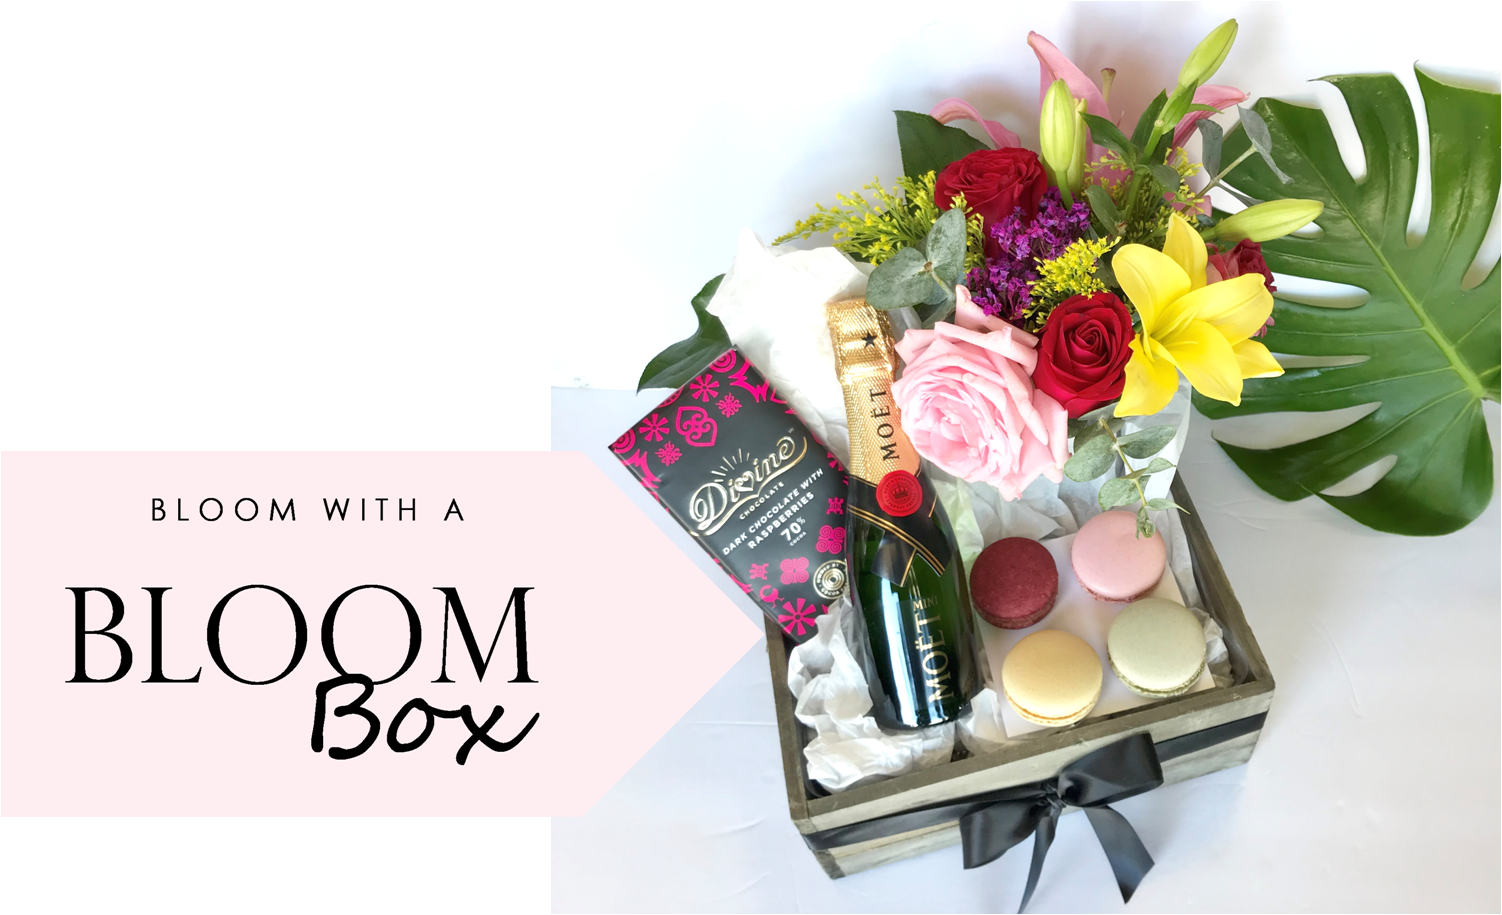 the-angies-floral-designs-el-paso-flowershop-el-paso-florist-79912-bloom-box-divine-chocolate-moet-chandon-macaroons-flower-arrangements.png